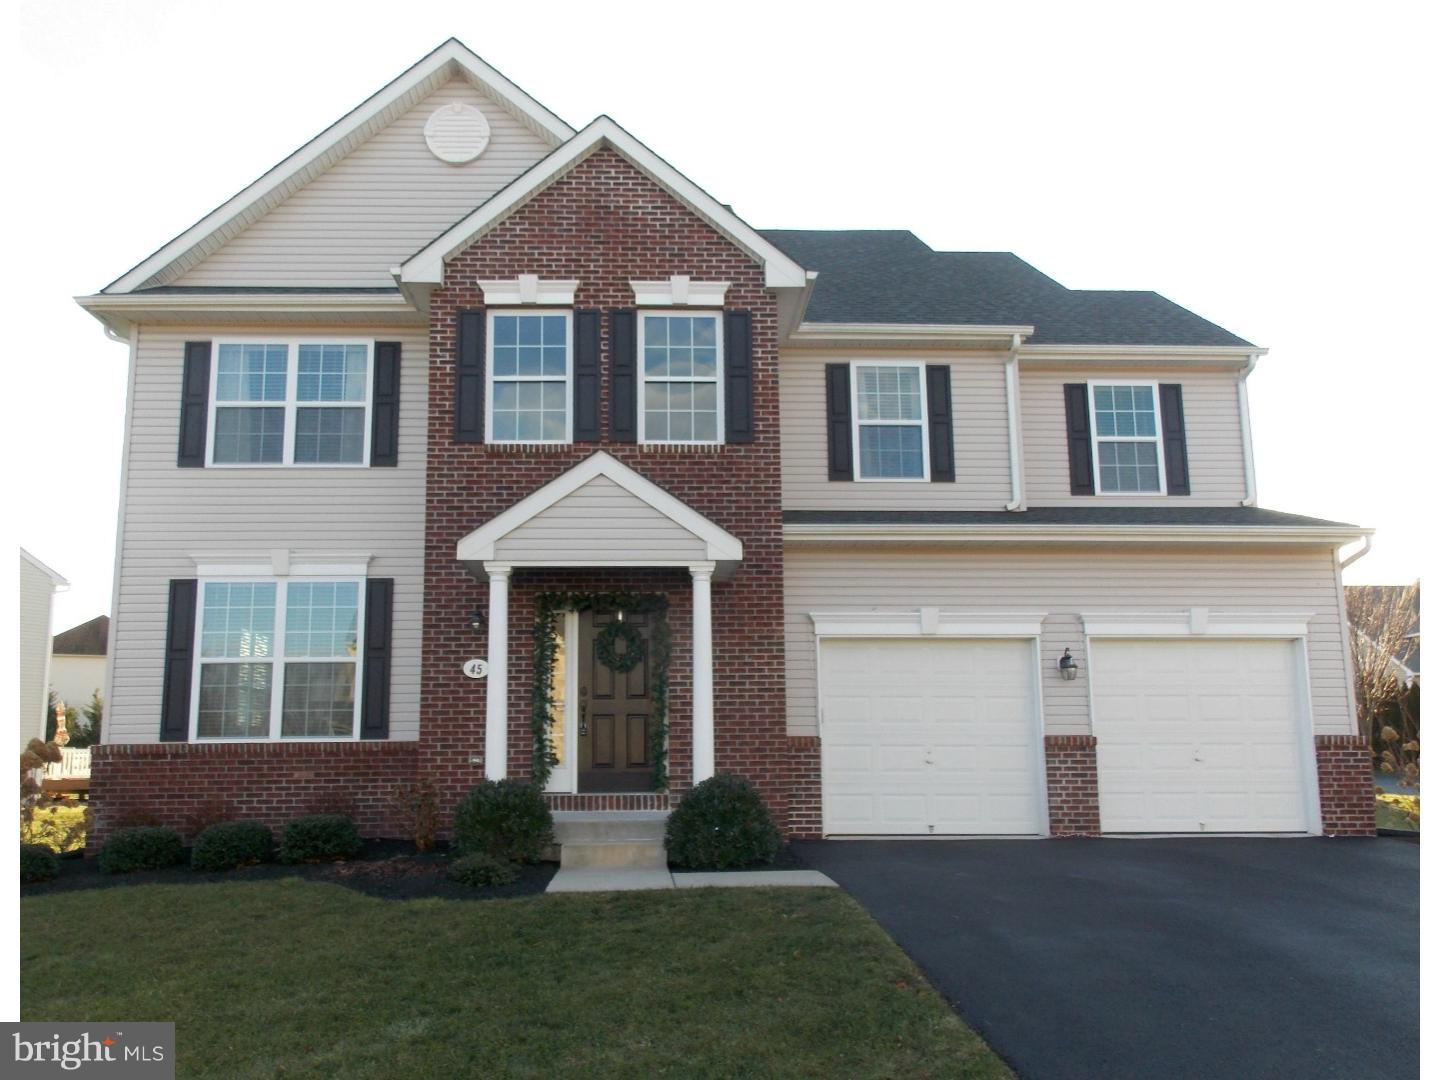 45 RUTHERFORD COURT, ROYERSFORD, PA 19468